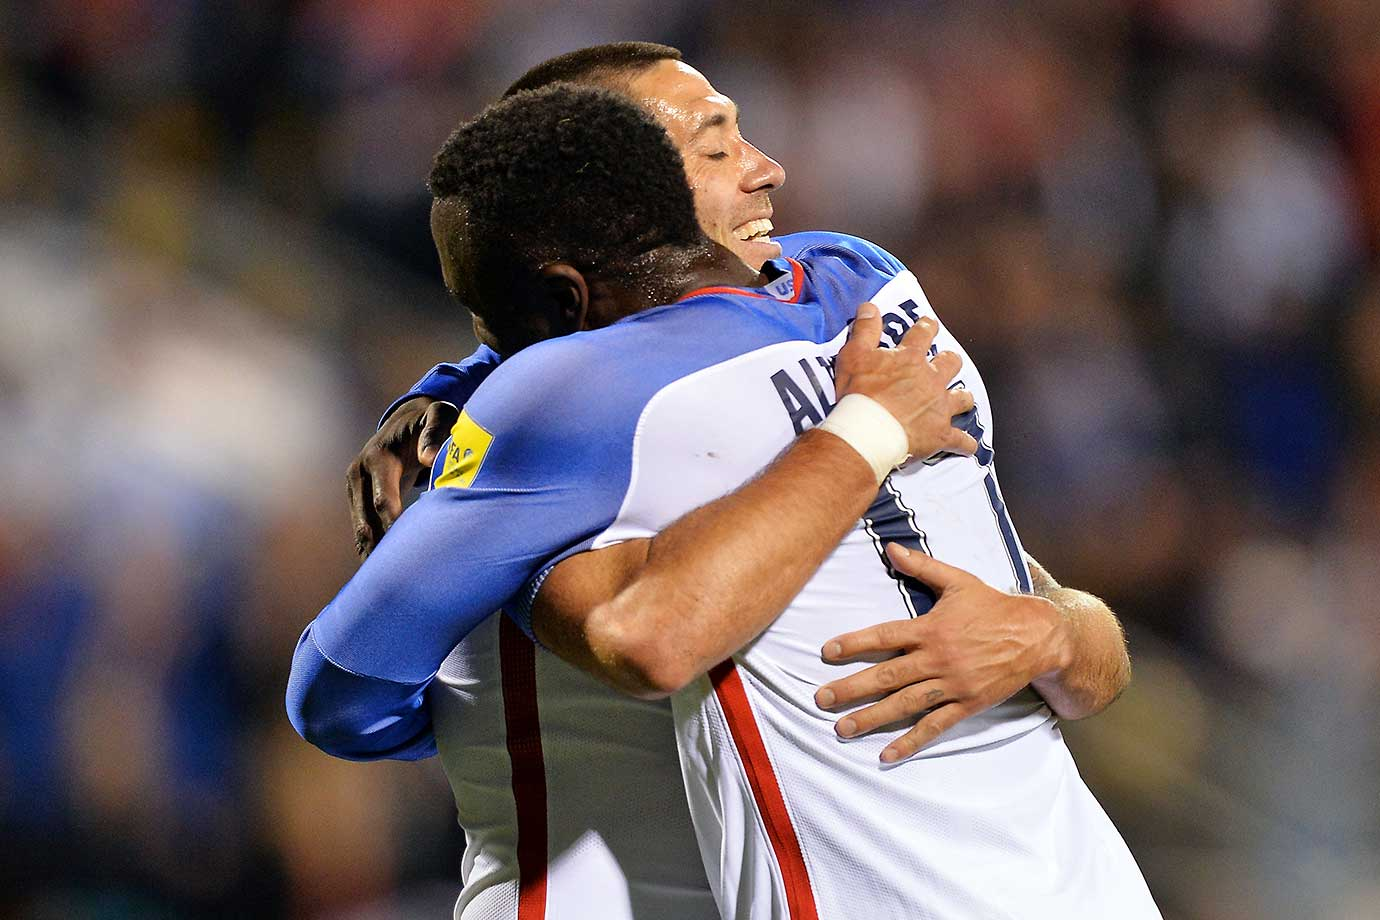 Jozy Altidore and Clint Dempsey celebrate after Dempsey assisted on Altidore's goal against Guatemala.